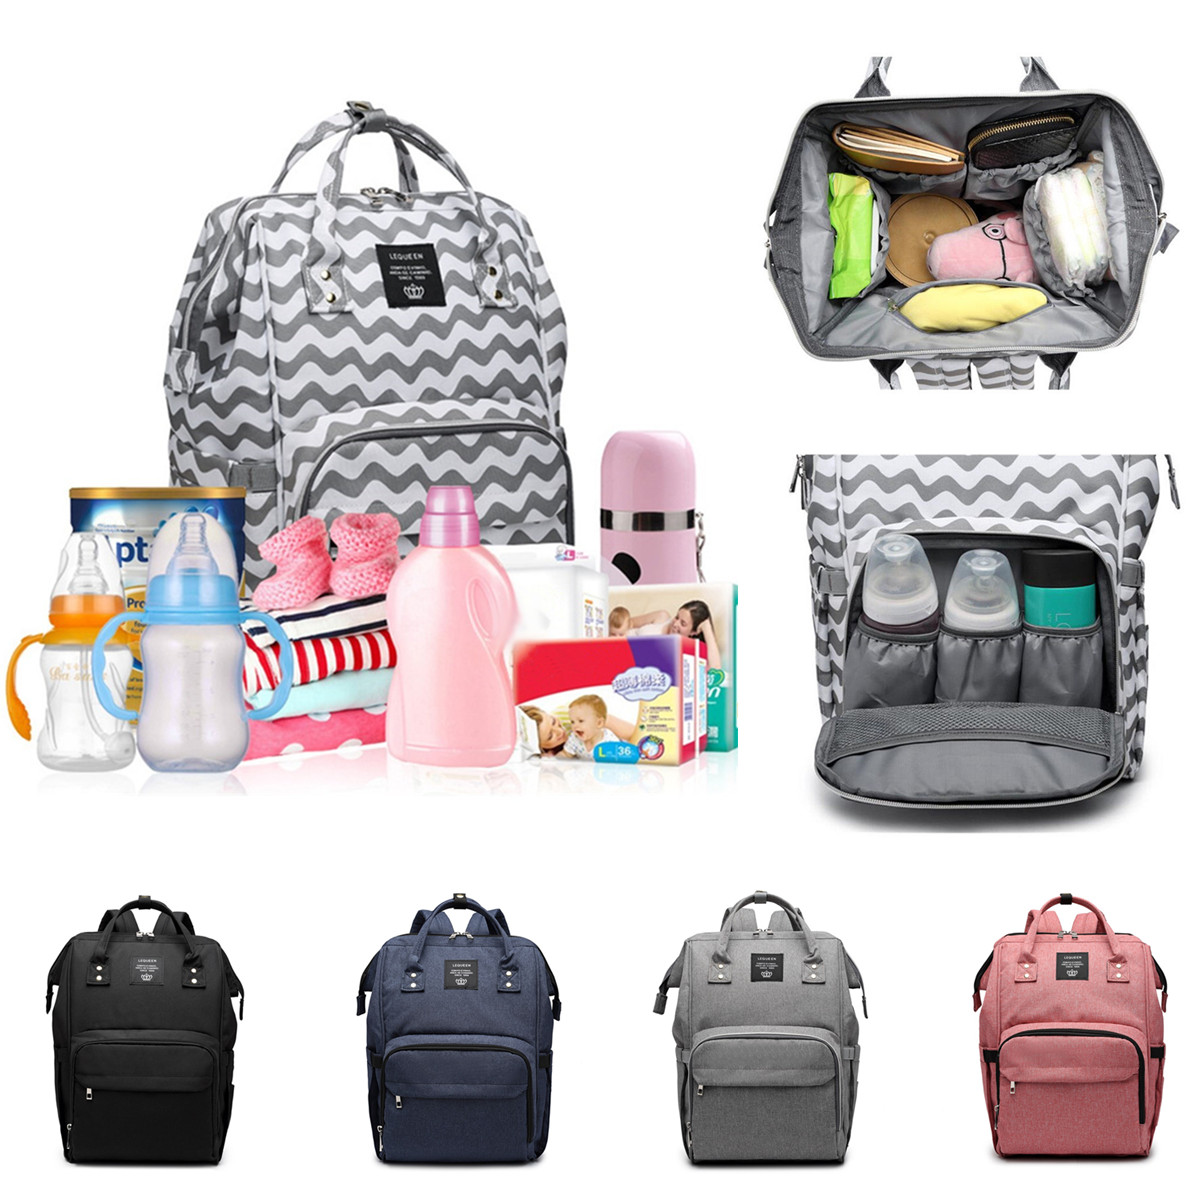 Travel Rucksack Details About Waterproof Large Baby Nappy Changing Bag Mummy Diaper Backpack Travel Rucksack